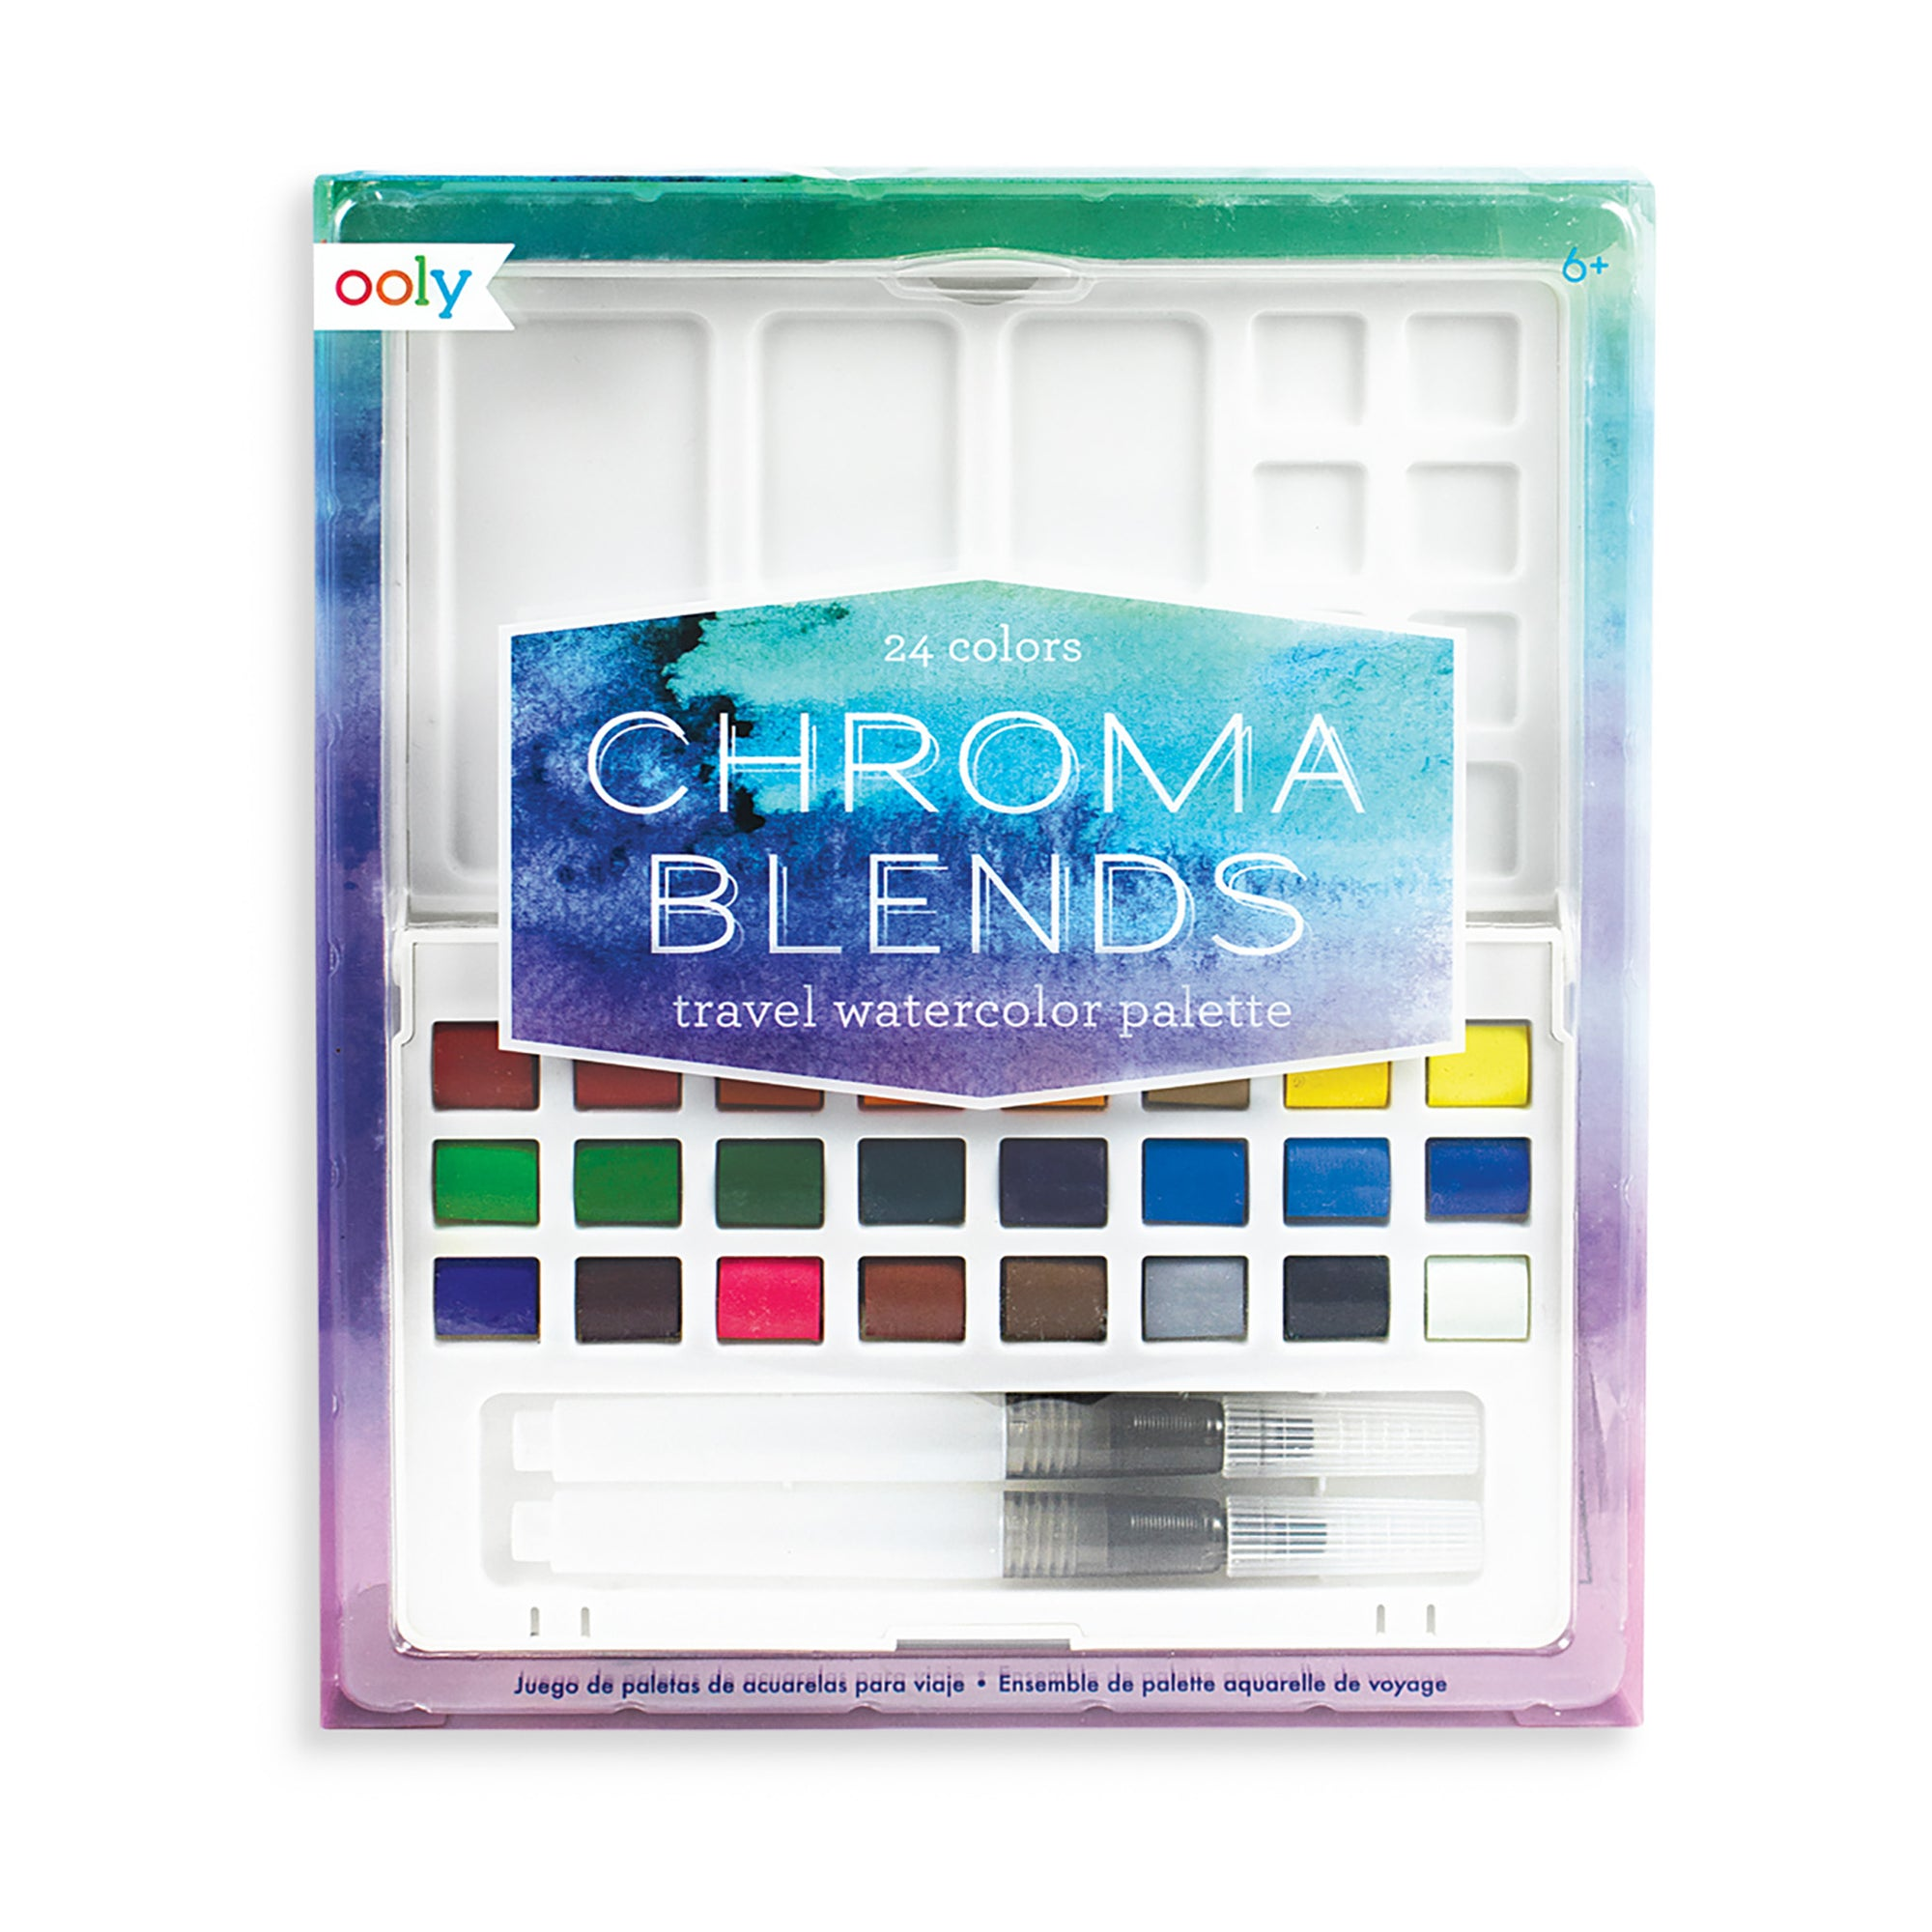 Chroma Blends Travel Watercolor Palette | Getty Store